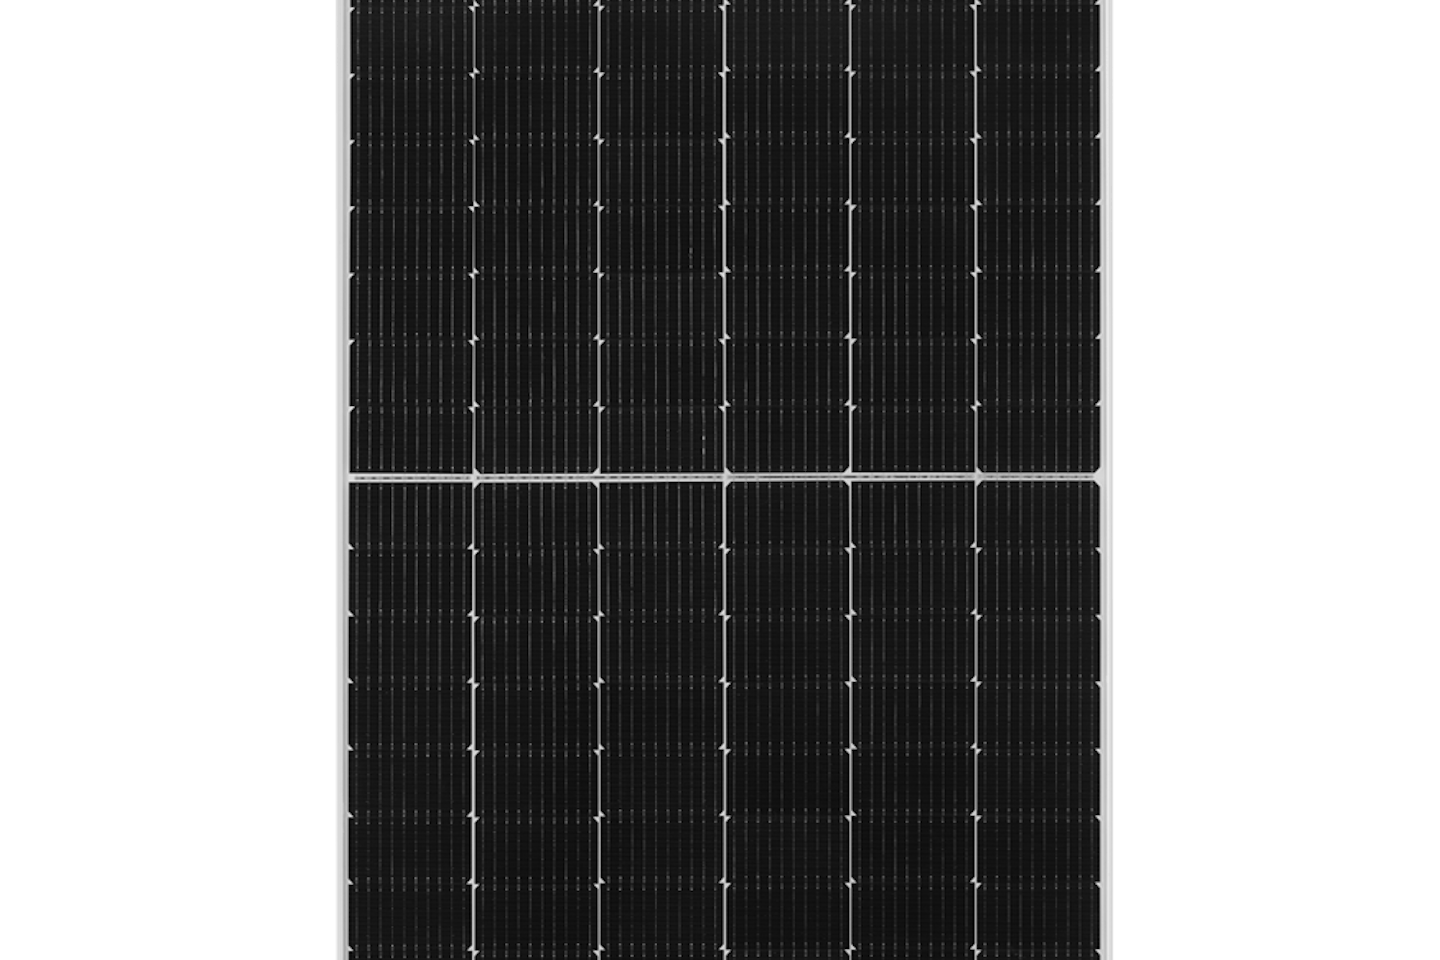 Tiger Pro 54p, JinkoSolar's brand new product to lead distribution market